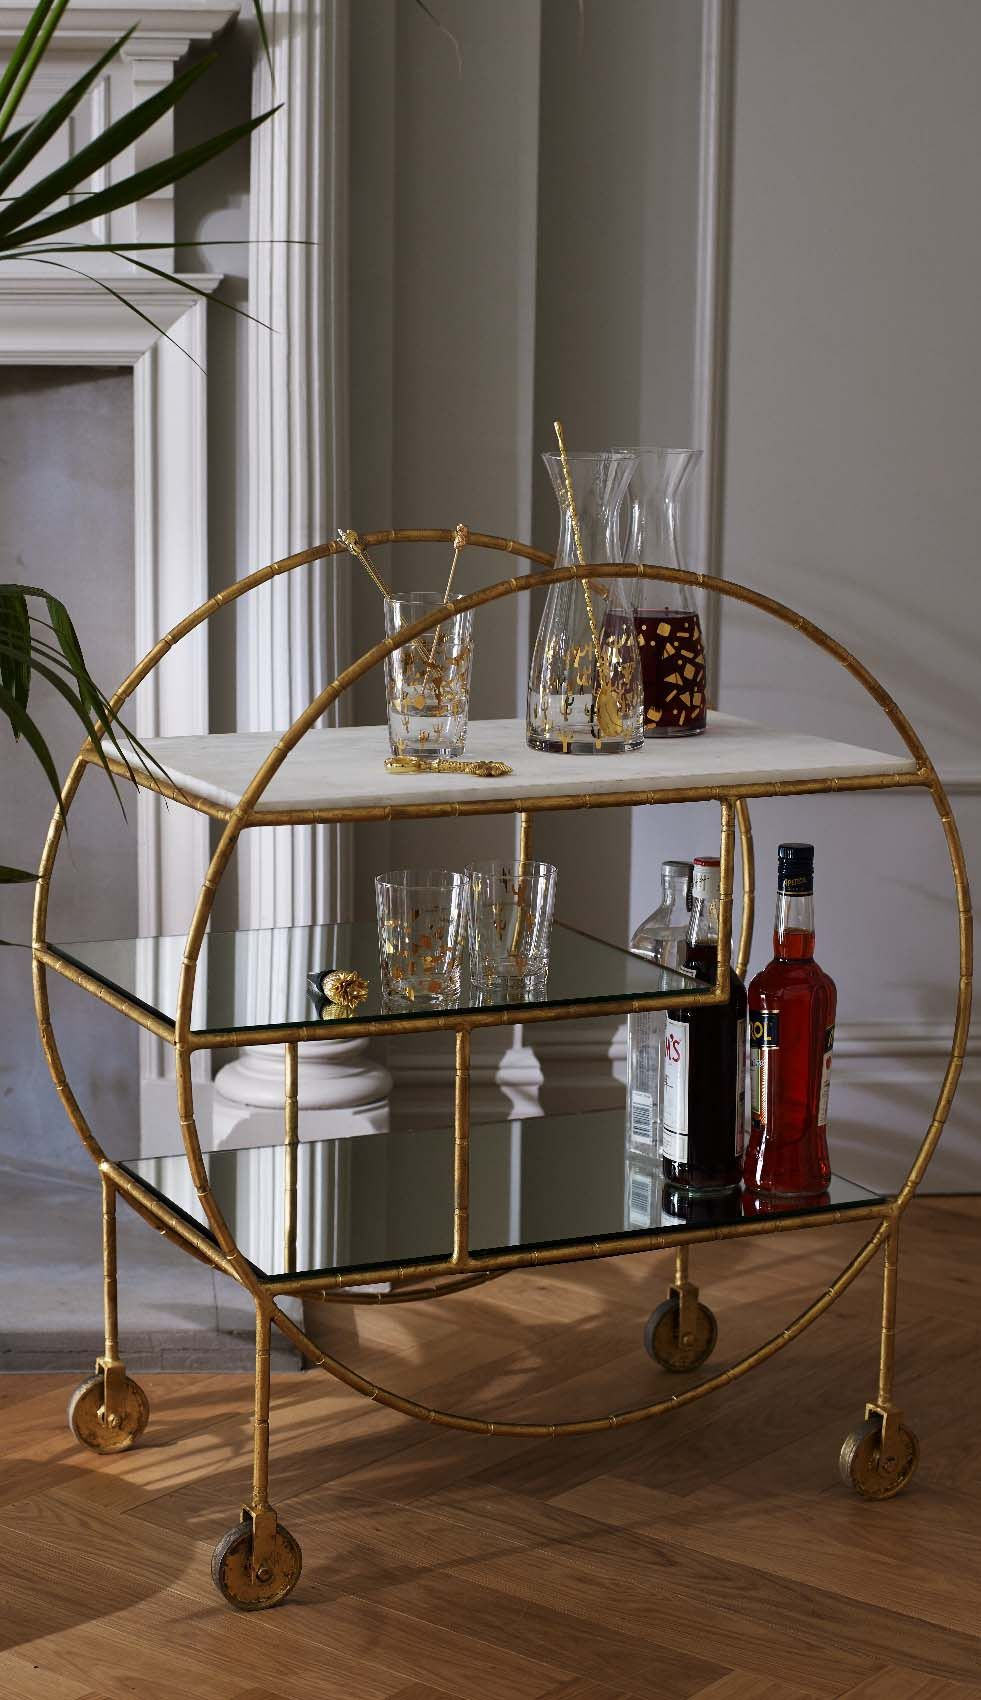 Muebles Ob Luxe Round Bamboo Drinks Trolley My Ob Studio Trolley